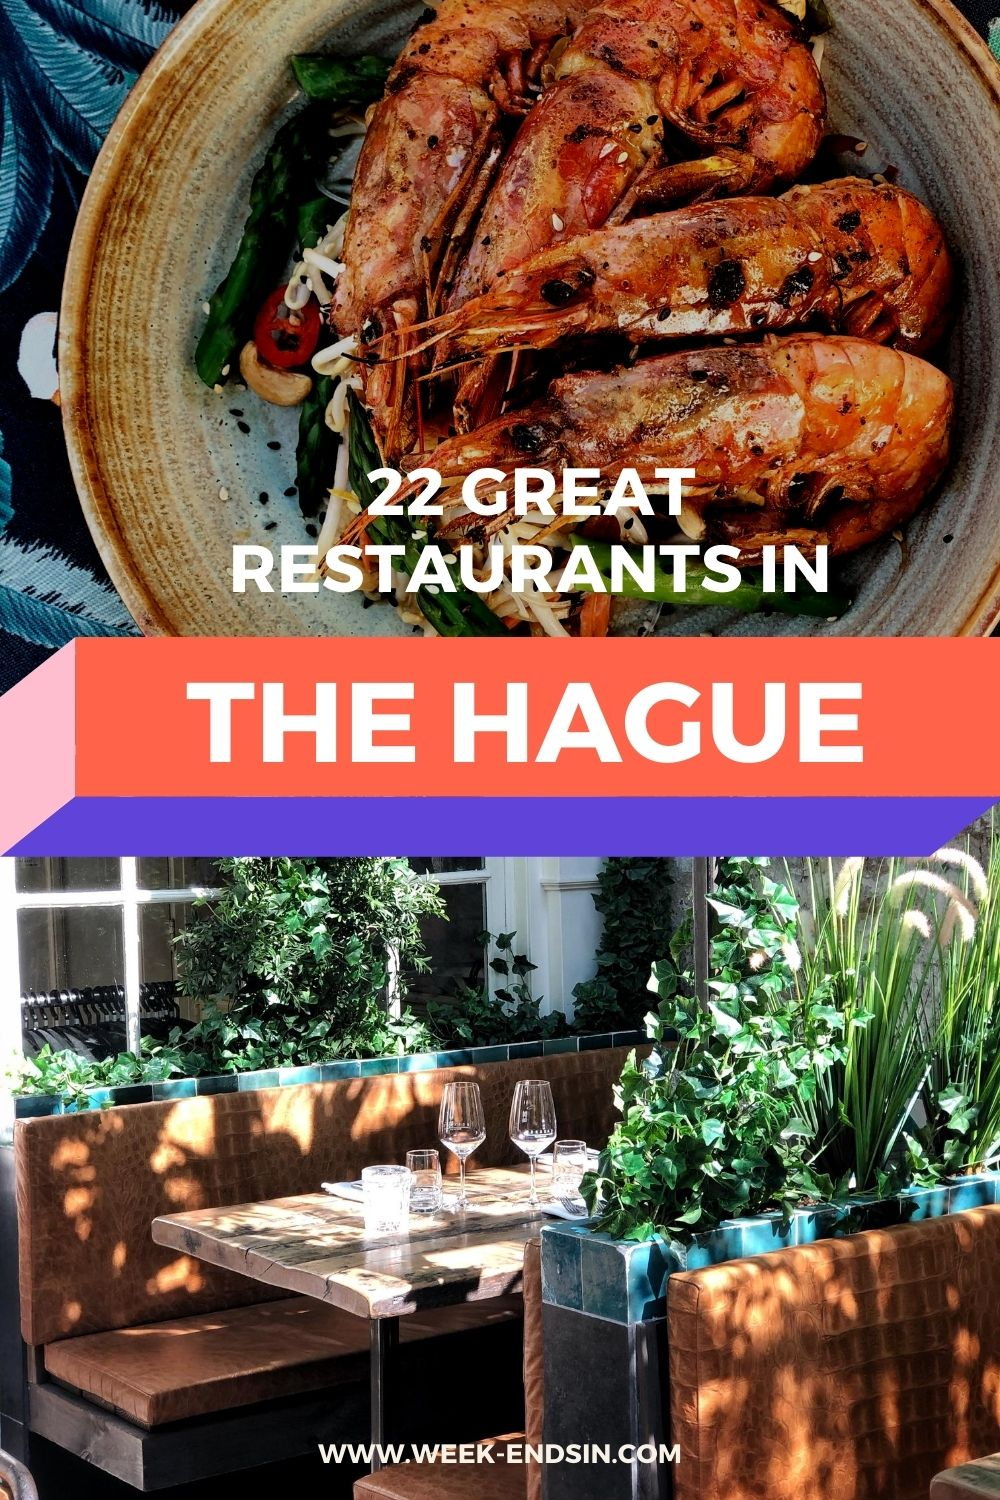 The Hague is filled with great restaurants, where you can enjoy the tastiest dishes, matching drinks and pleasant atmosphere for hours. Read them all here!